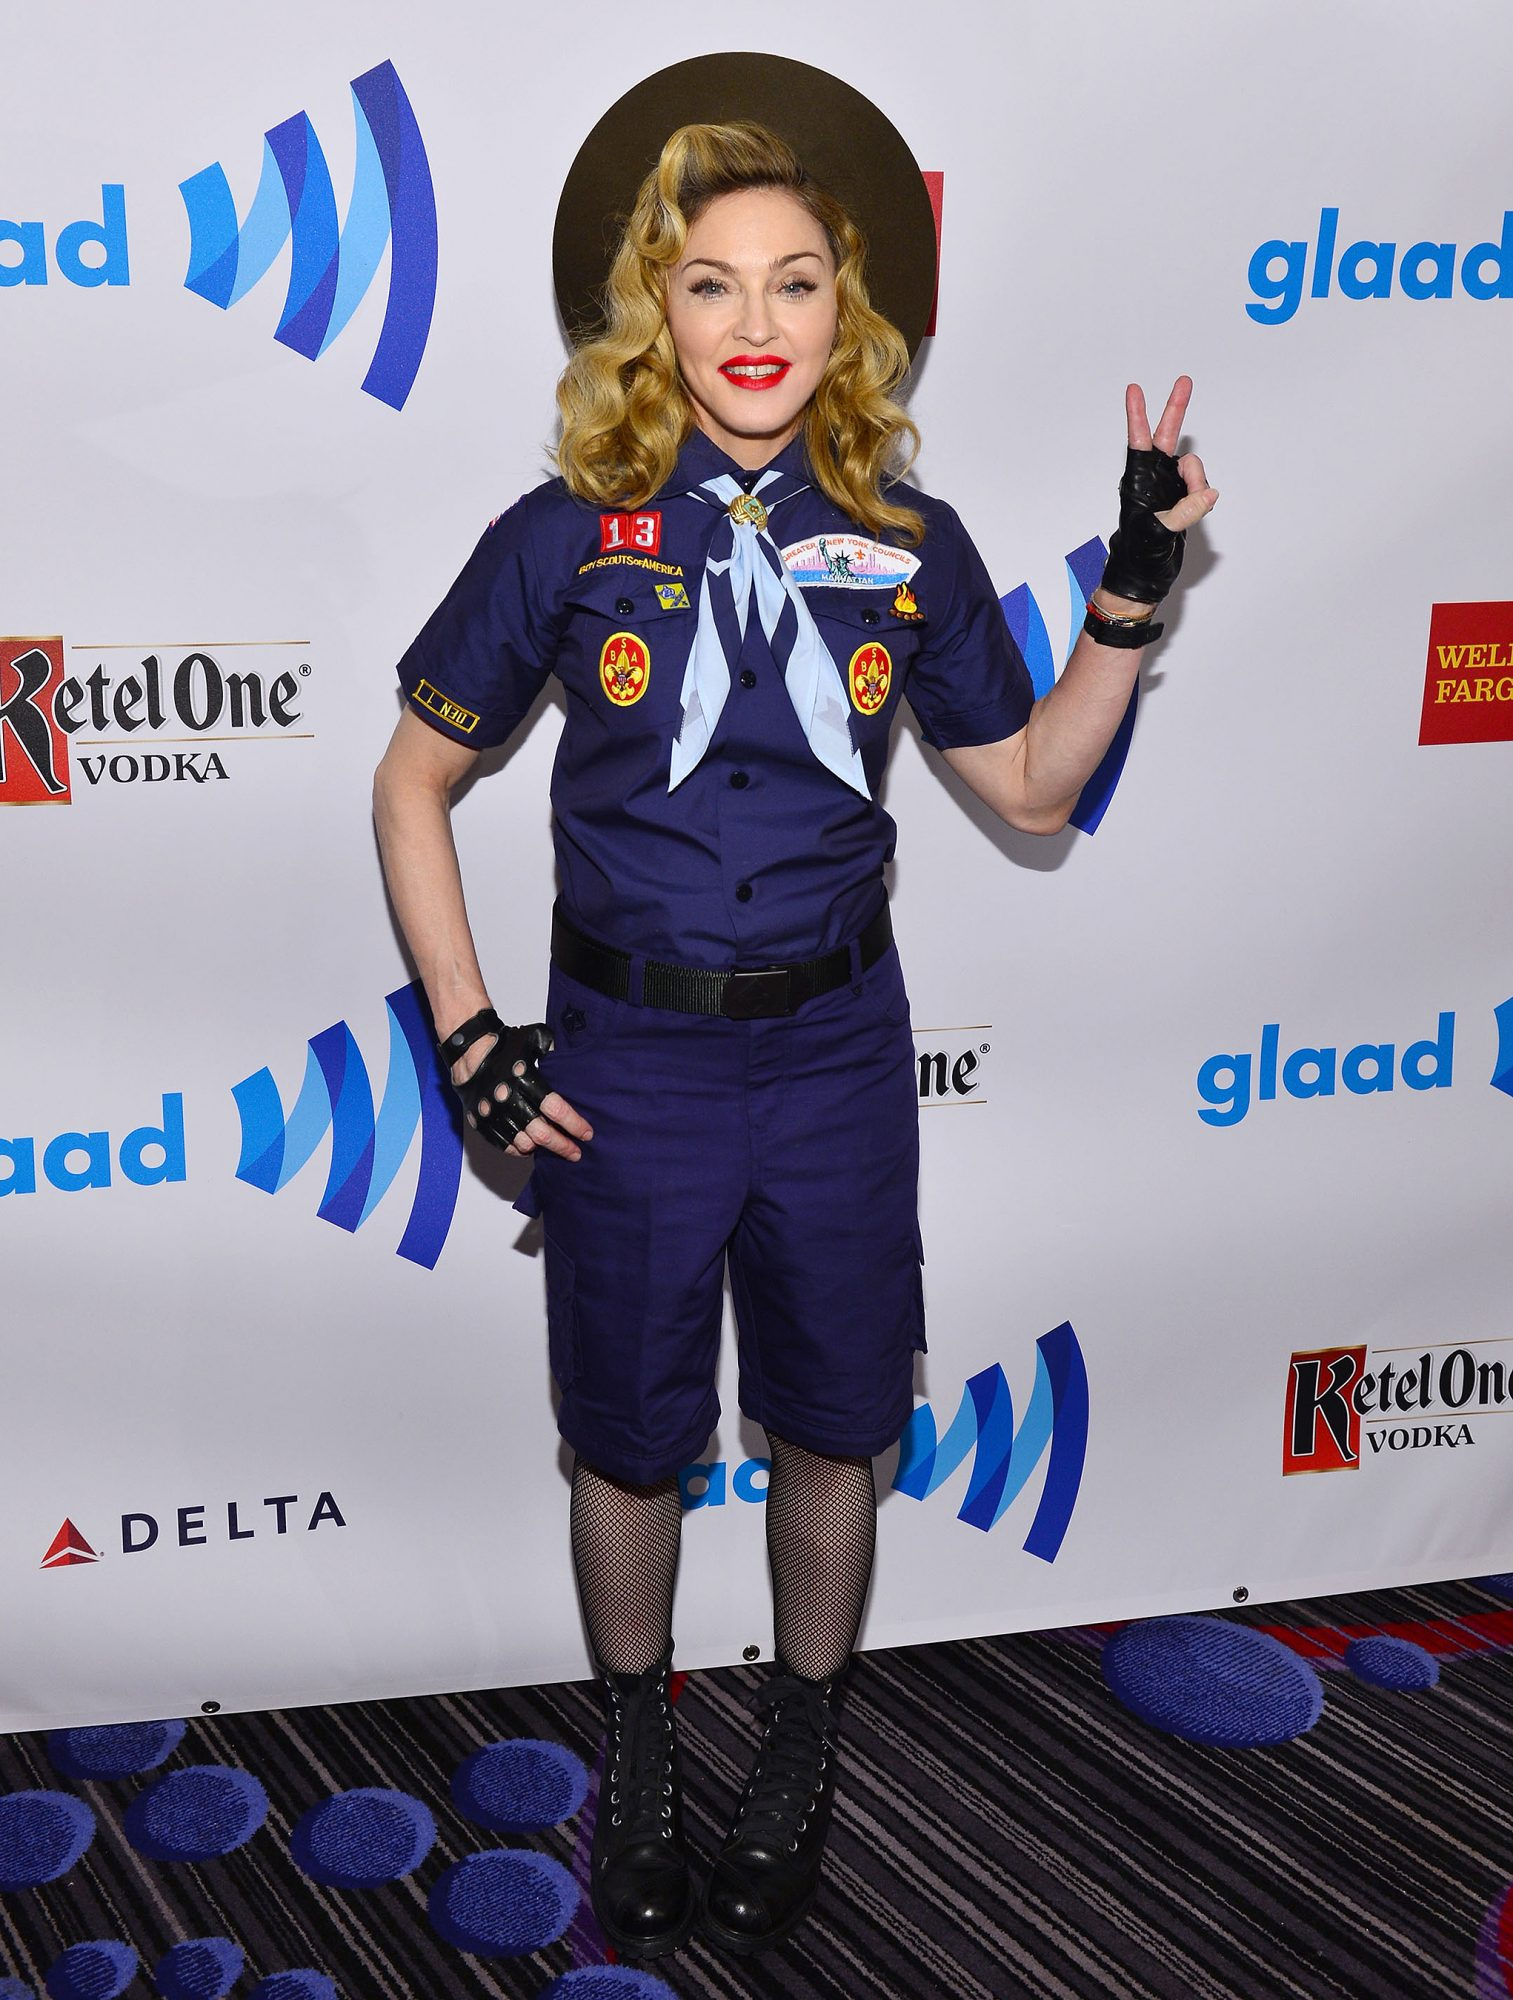 2013: Madonna protests the Boy Scout ban